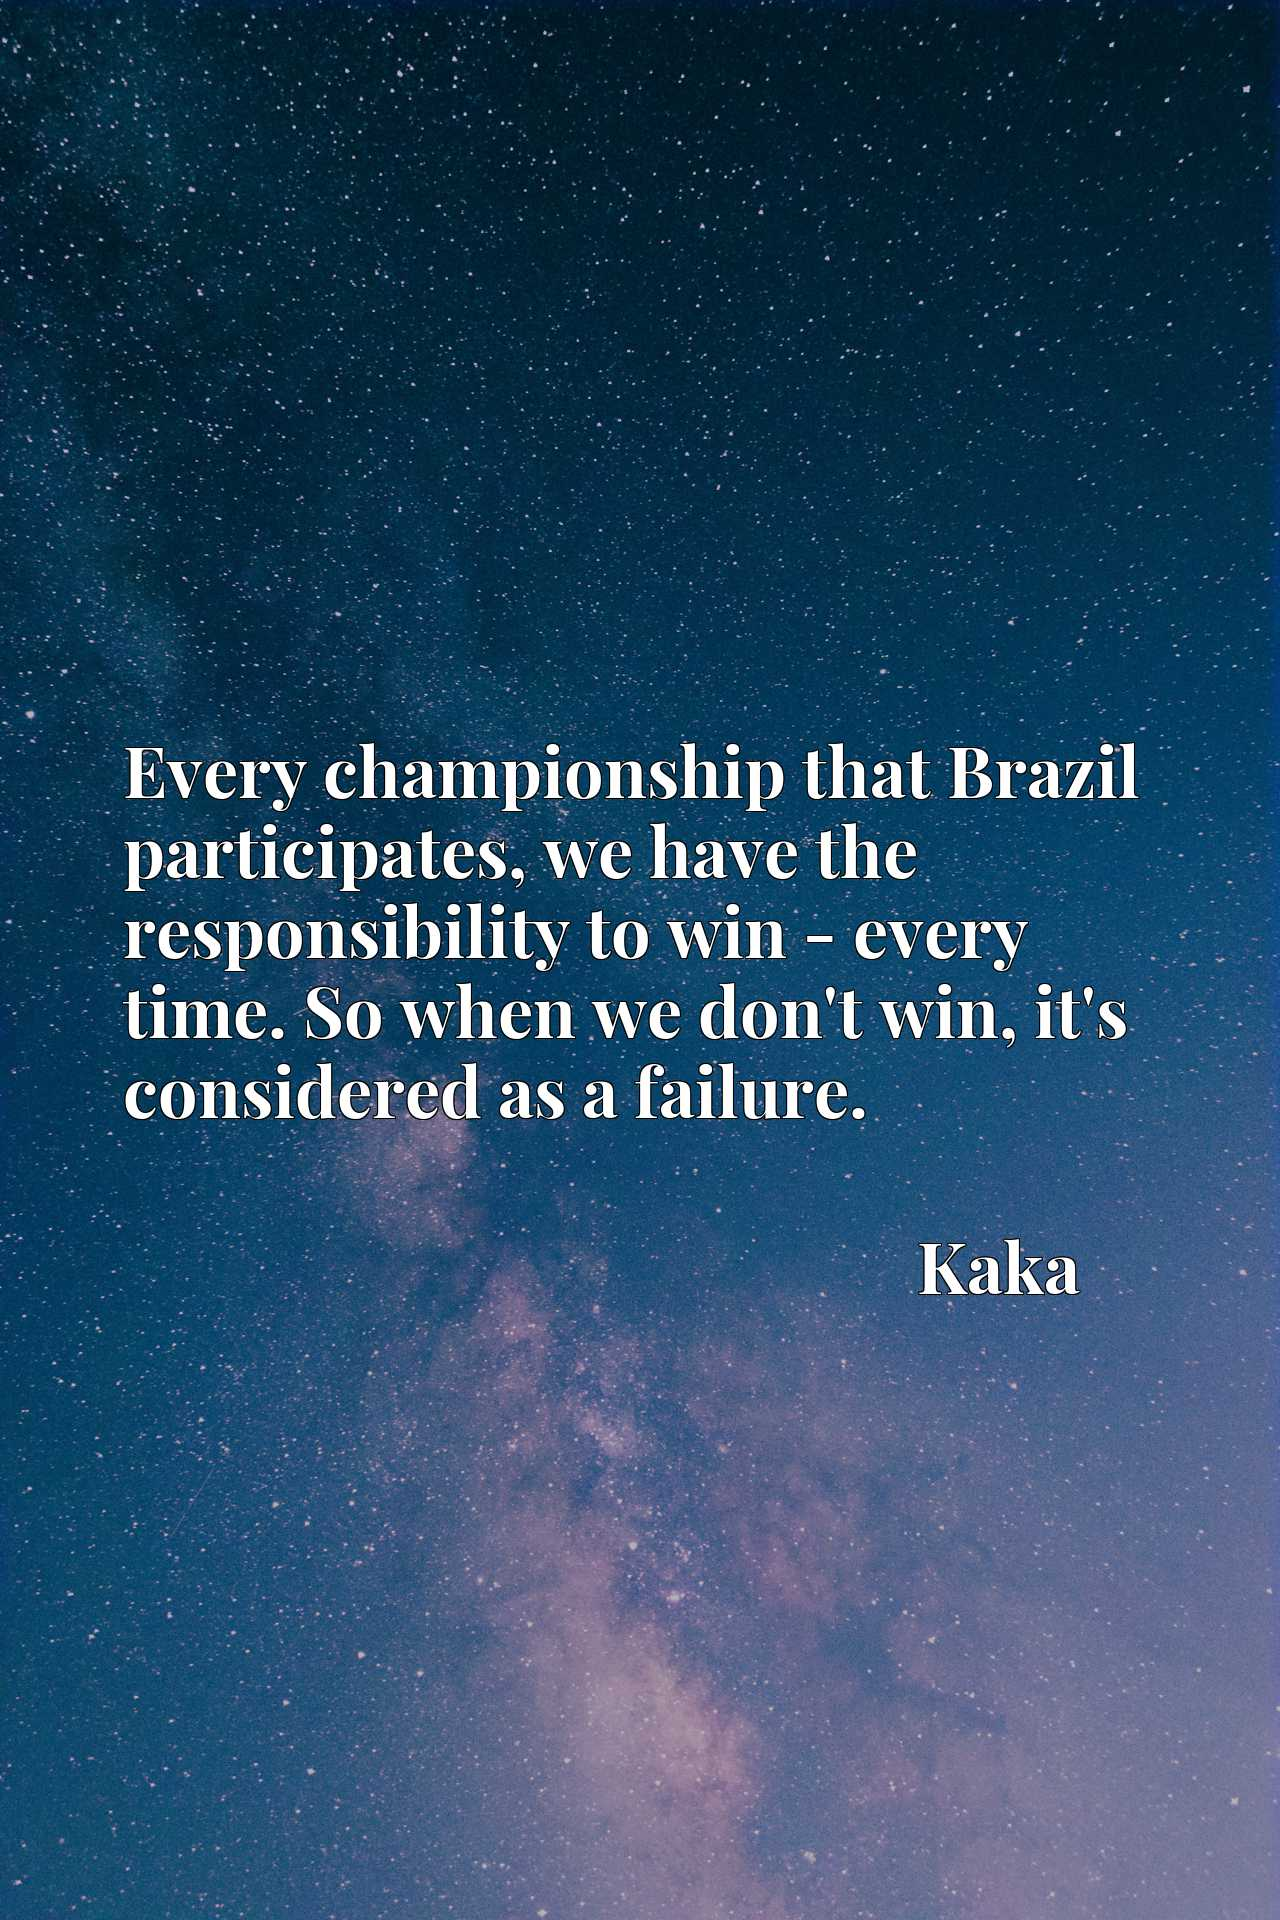 Every championship that Brazil participates, we have the responsibility to win - every time. So when we don't win, it's considered as a failure.